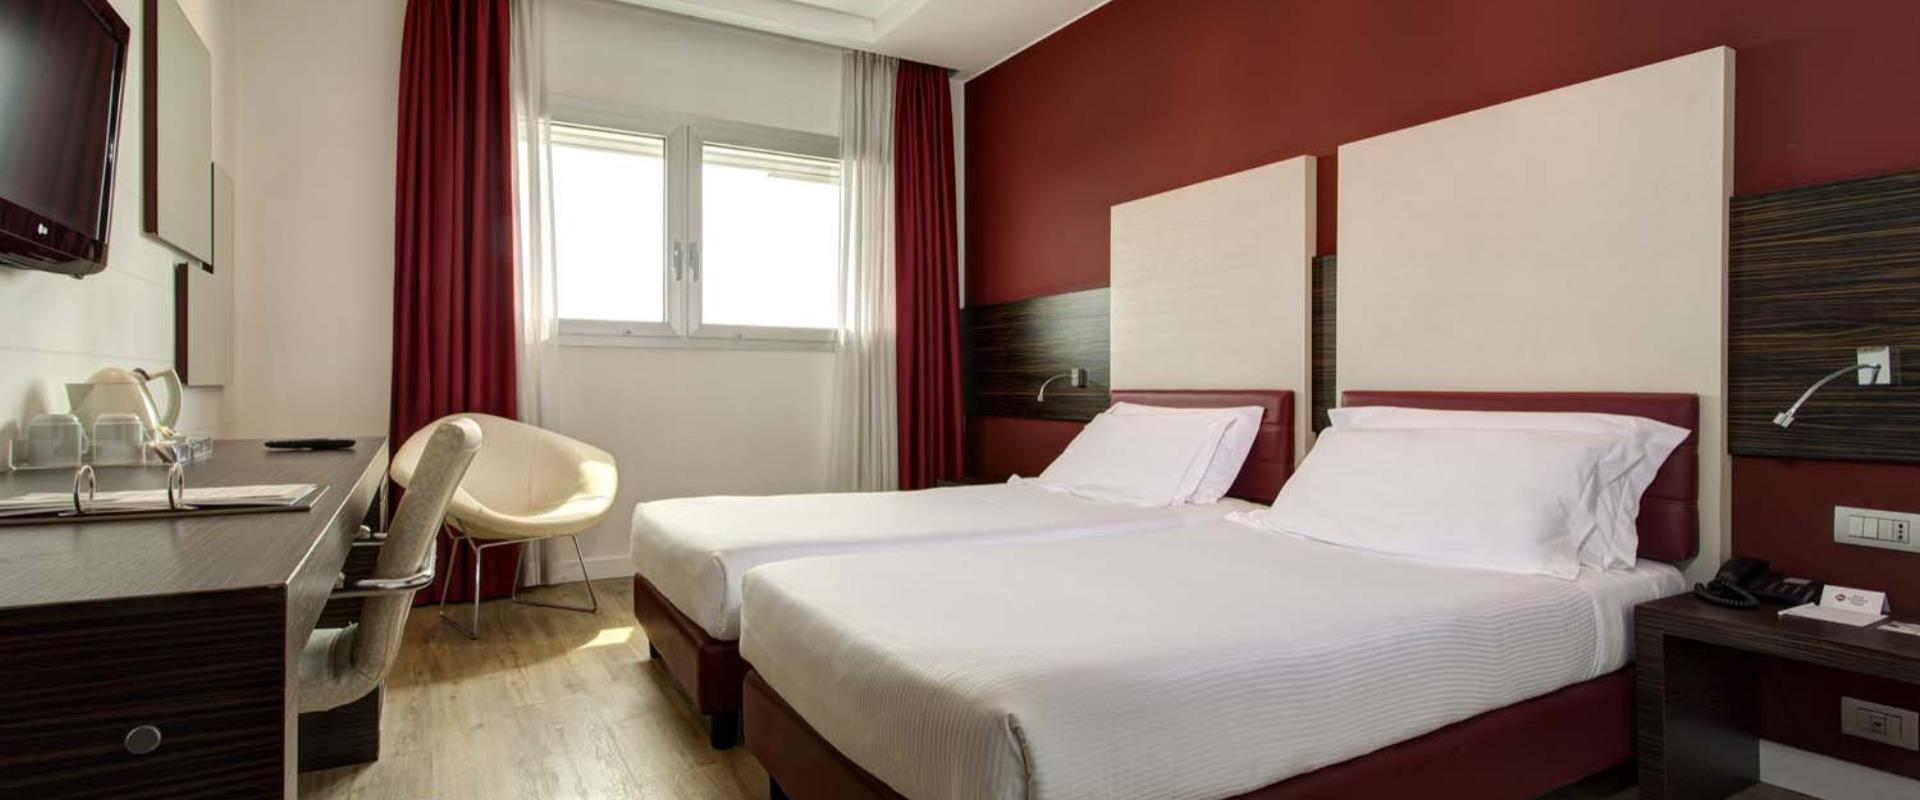 BW Plus Quid Hotel Venice - Rooms - Standard Twin